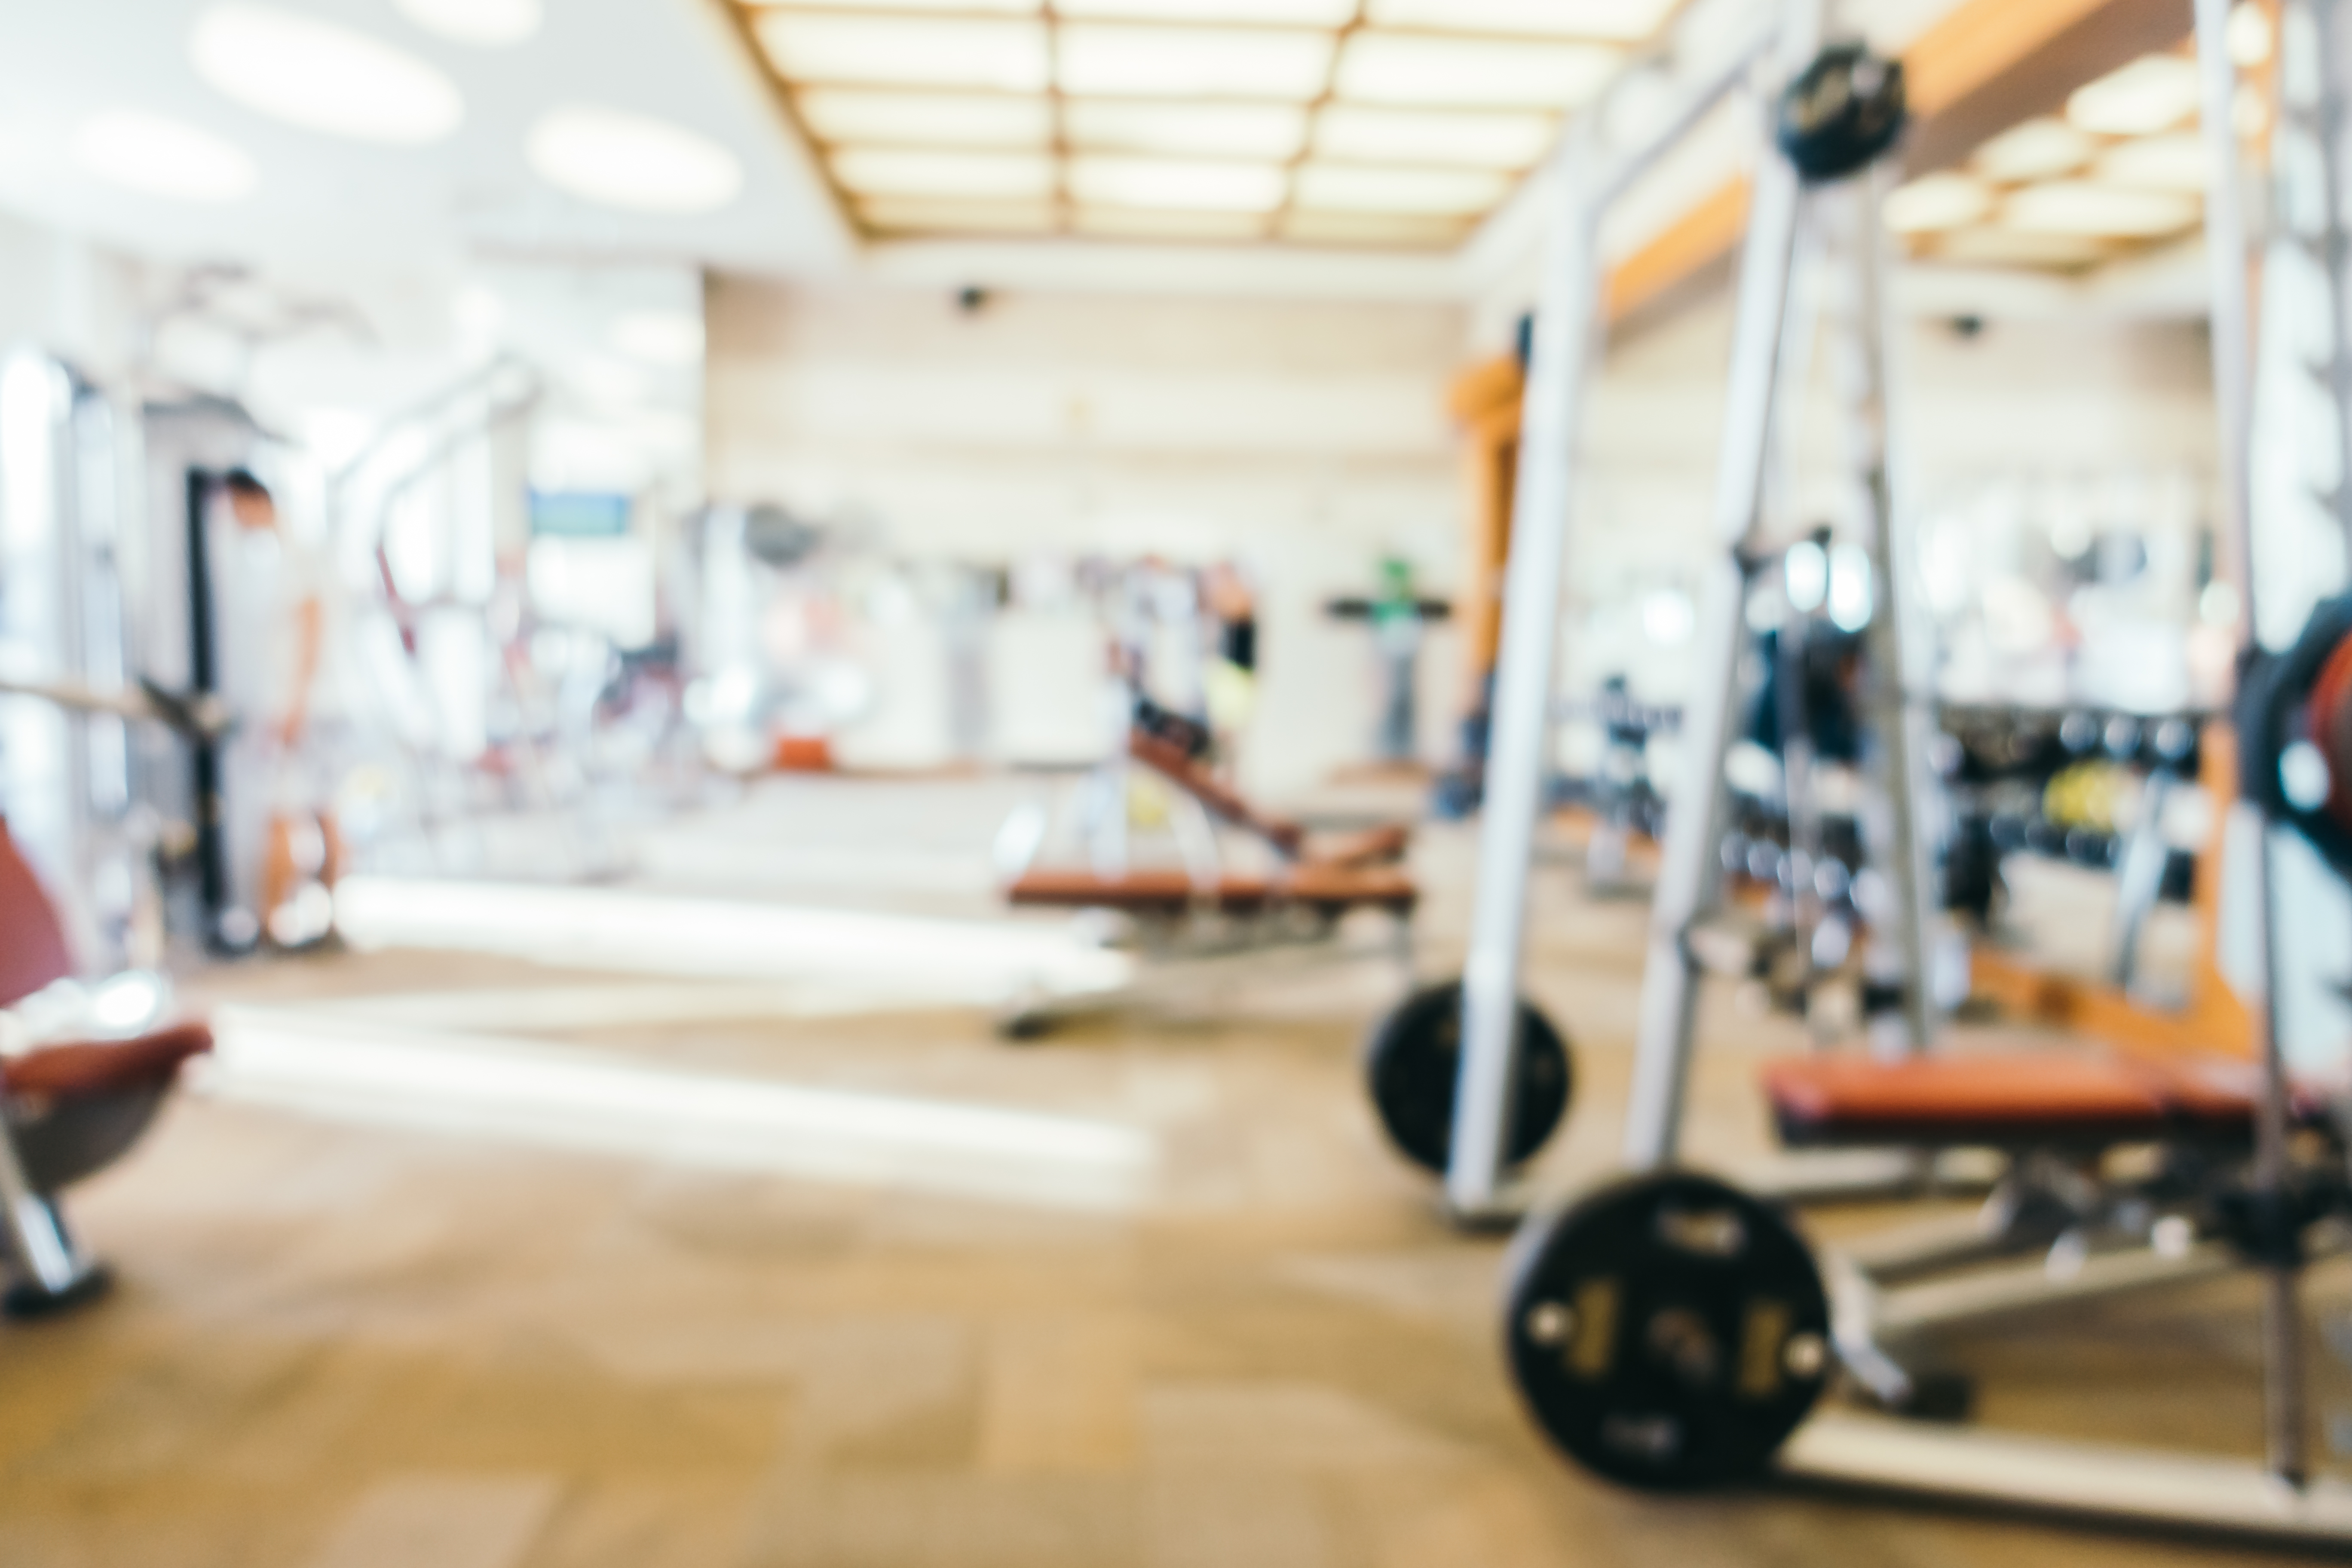 Abstract blur fitness and gym room interior for background